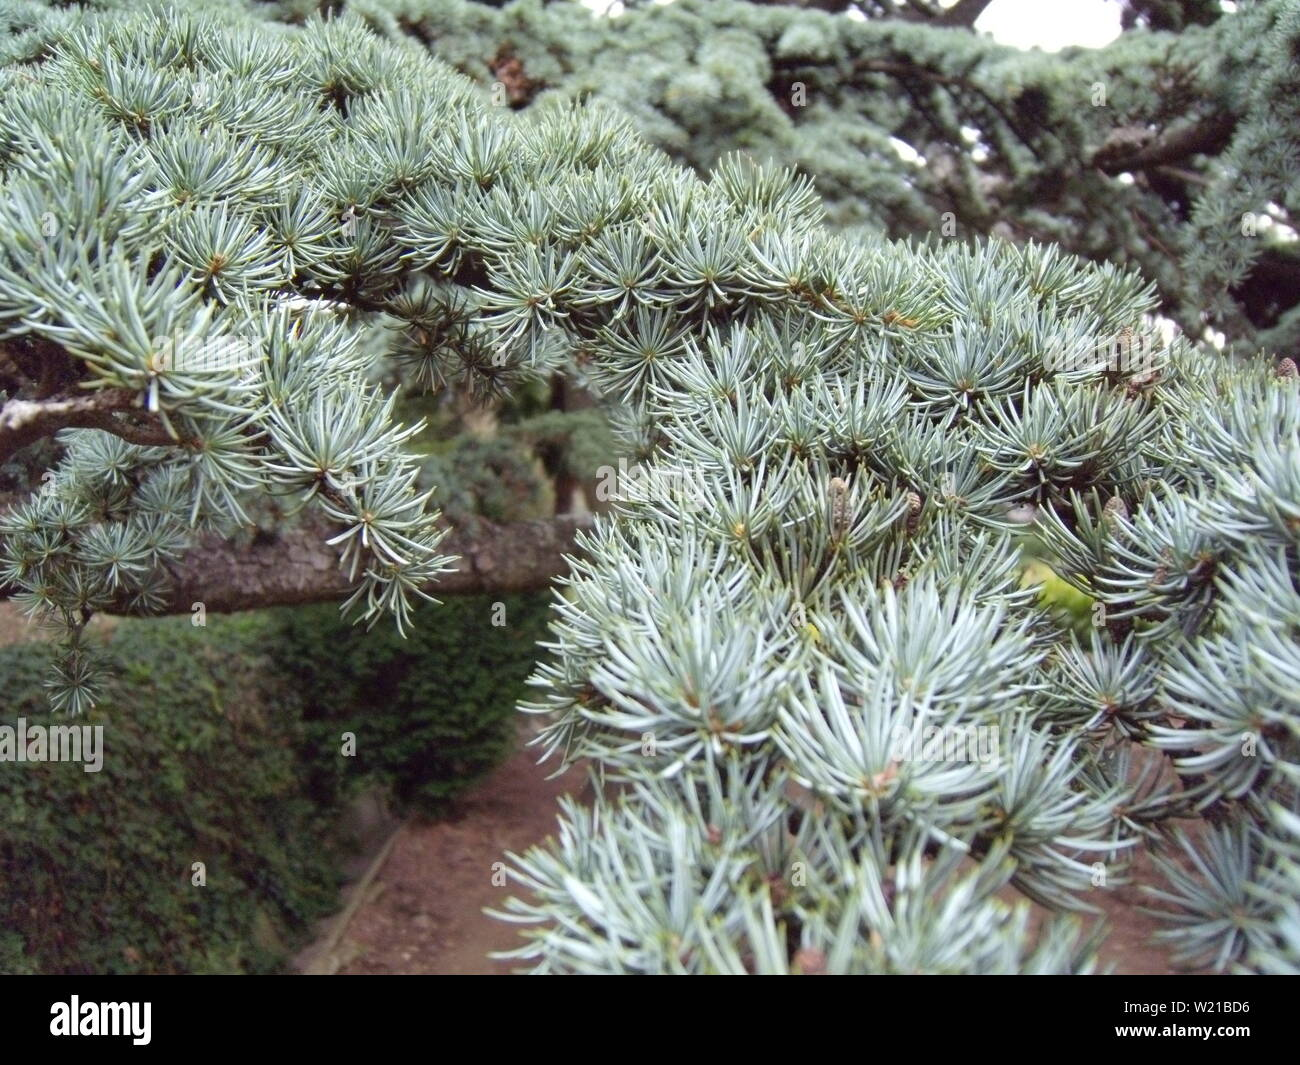 Close-up of a prickly blue spruce branch with cones. Young red fir cones on the branch. - Stock Image